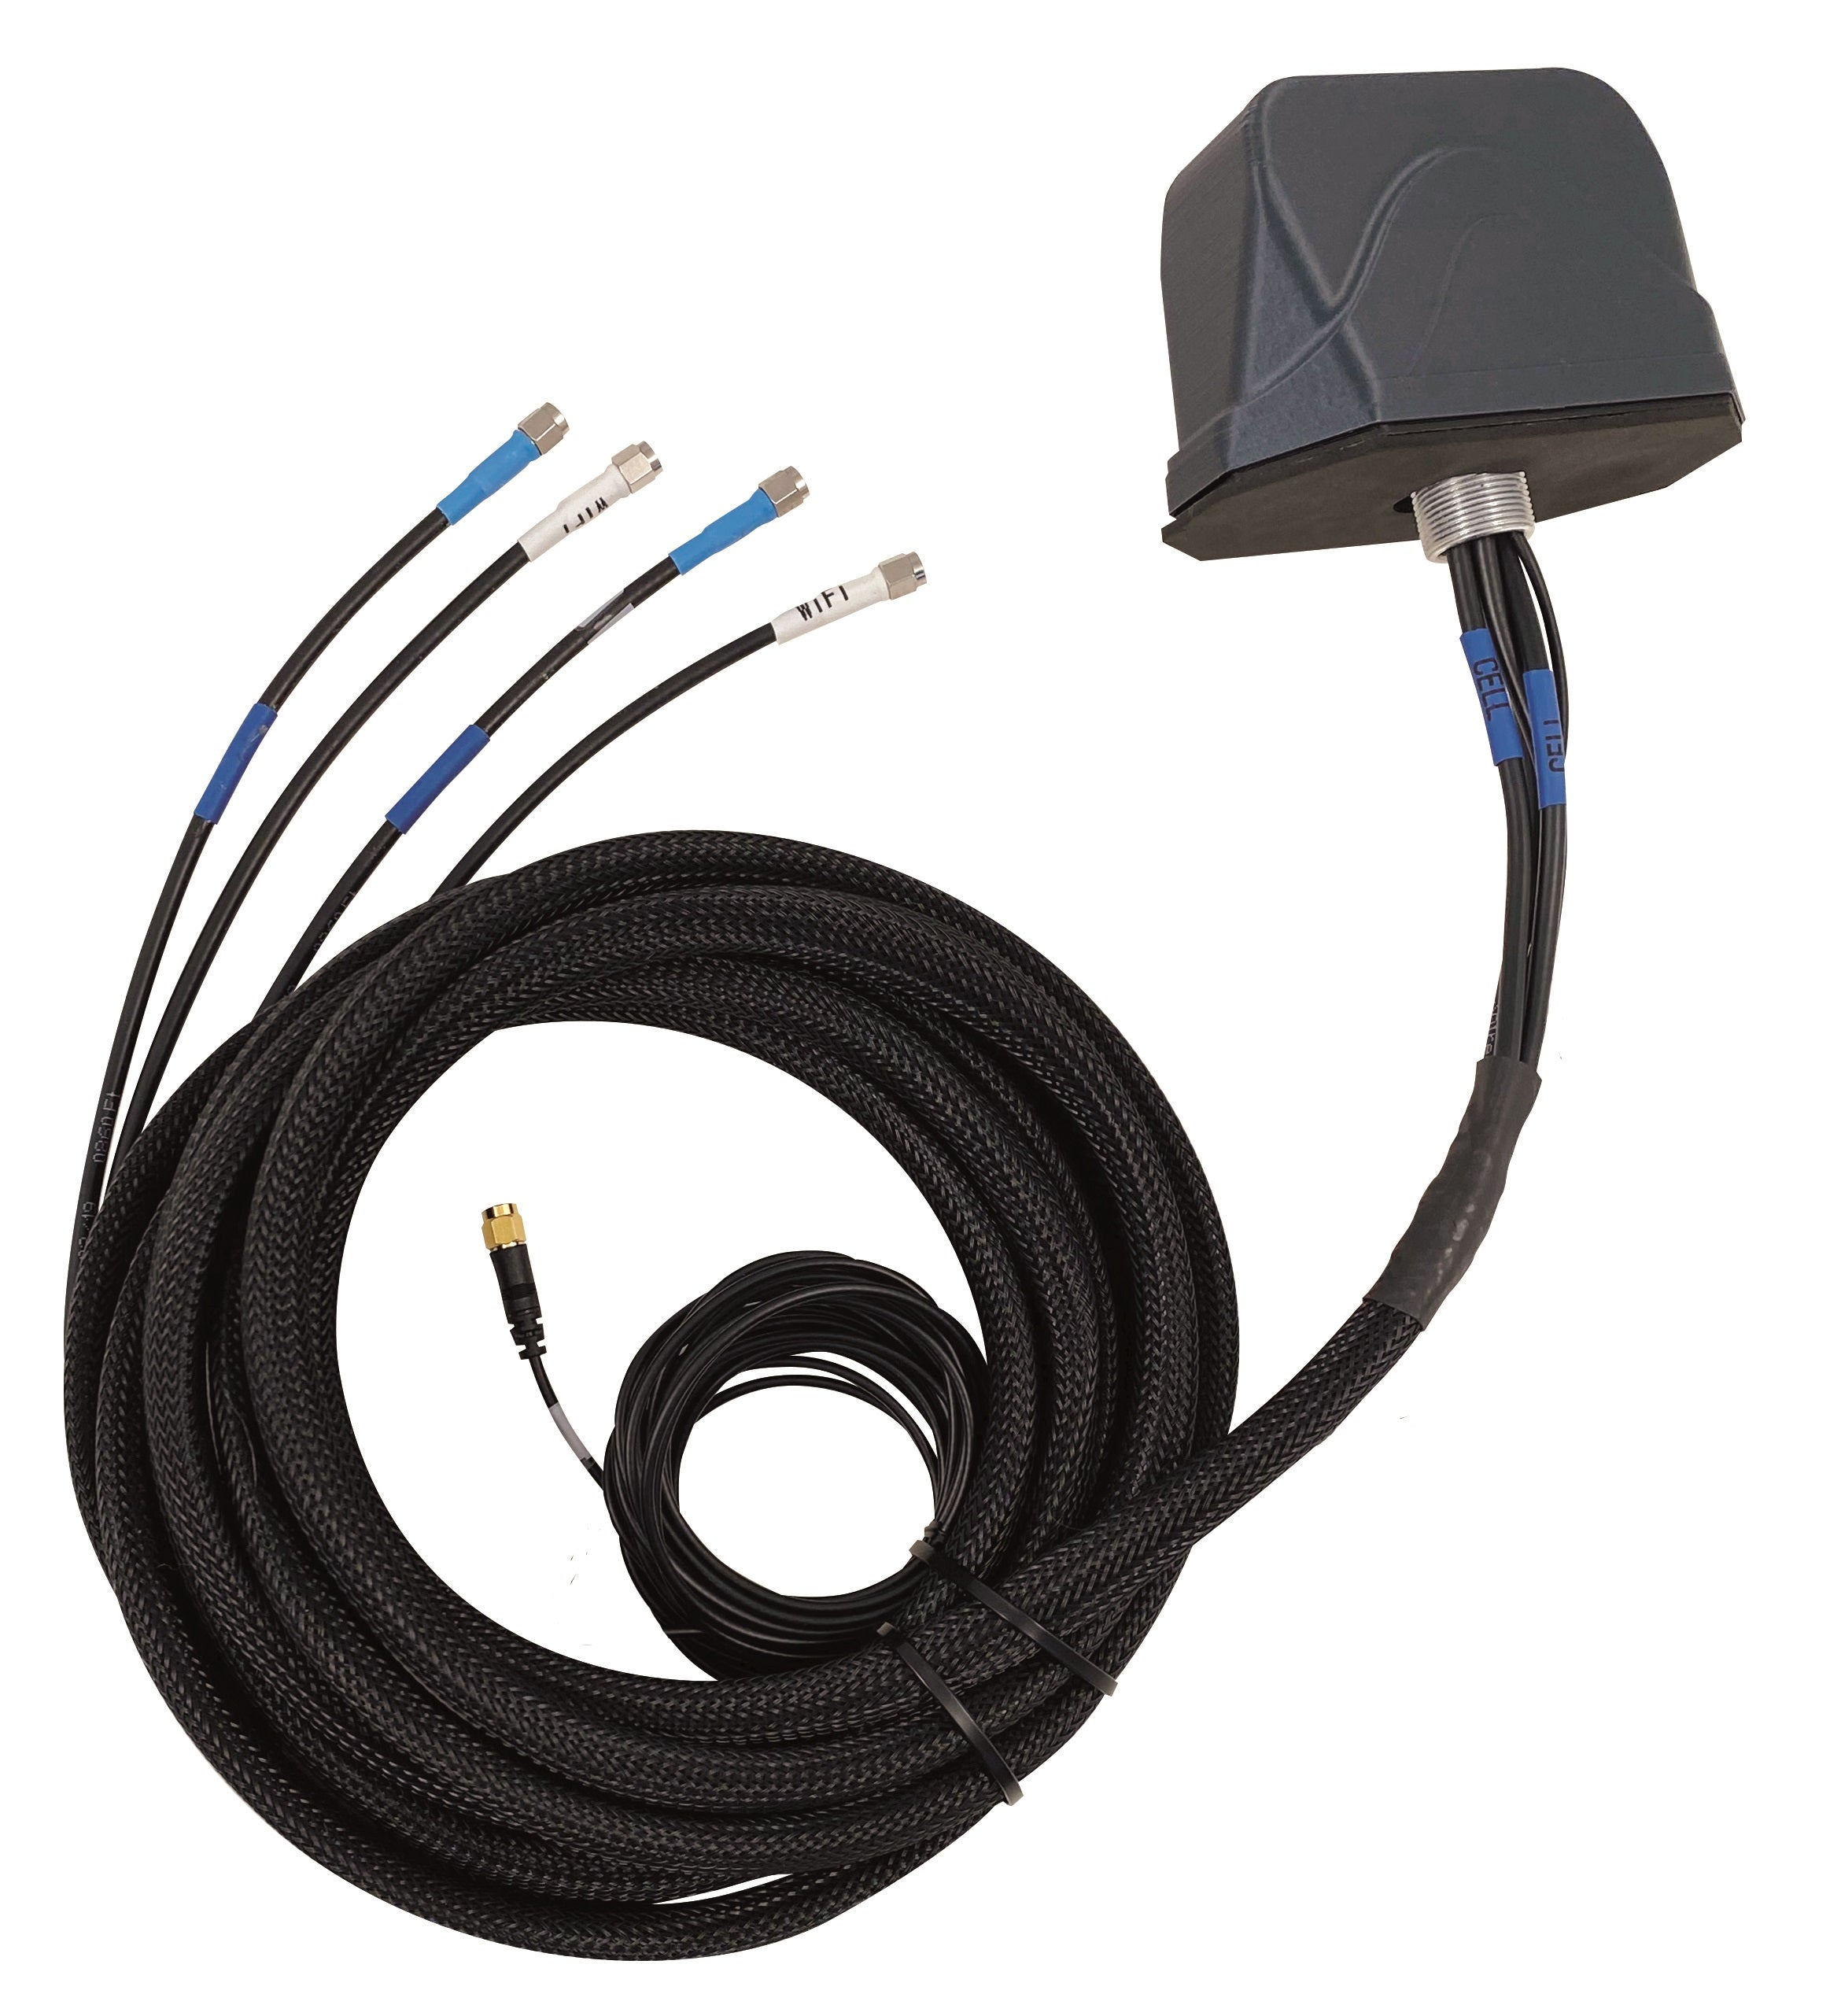 RM2D-G55WW-18-SSSRR-B: 5-in-1 Vehicular Antenna. MiMo 4G/LTE/5G/Band 71/CBRS + Dual Wi-Fi & GPS/GNSS. Direct Mount.